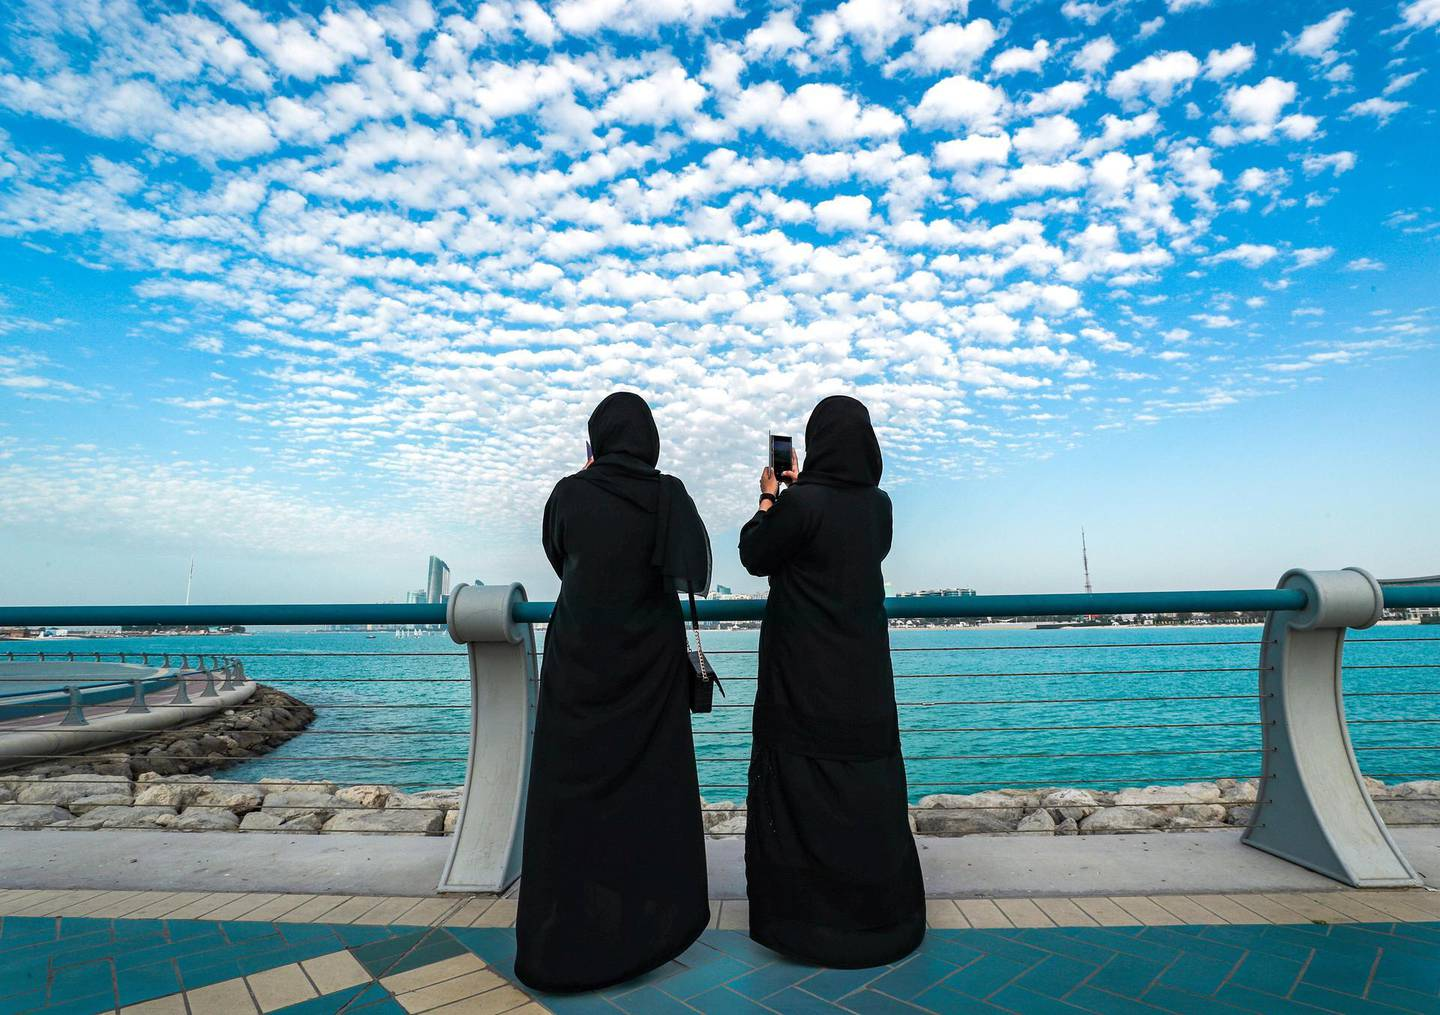 Abu Dhabi, United Arab Emirates, March 3, 2021.  Friends enjoy the view of tiny cotton ball like clouds at the Corniche before sunset. Victor Besa / The NationalSection:  NAFor:  Big Picture/Stock Images/Standalone